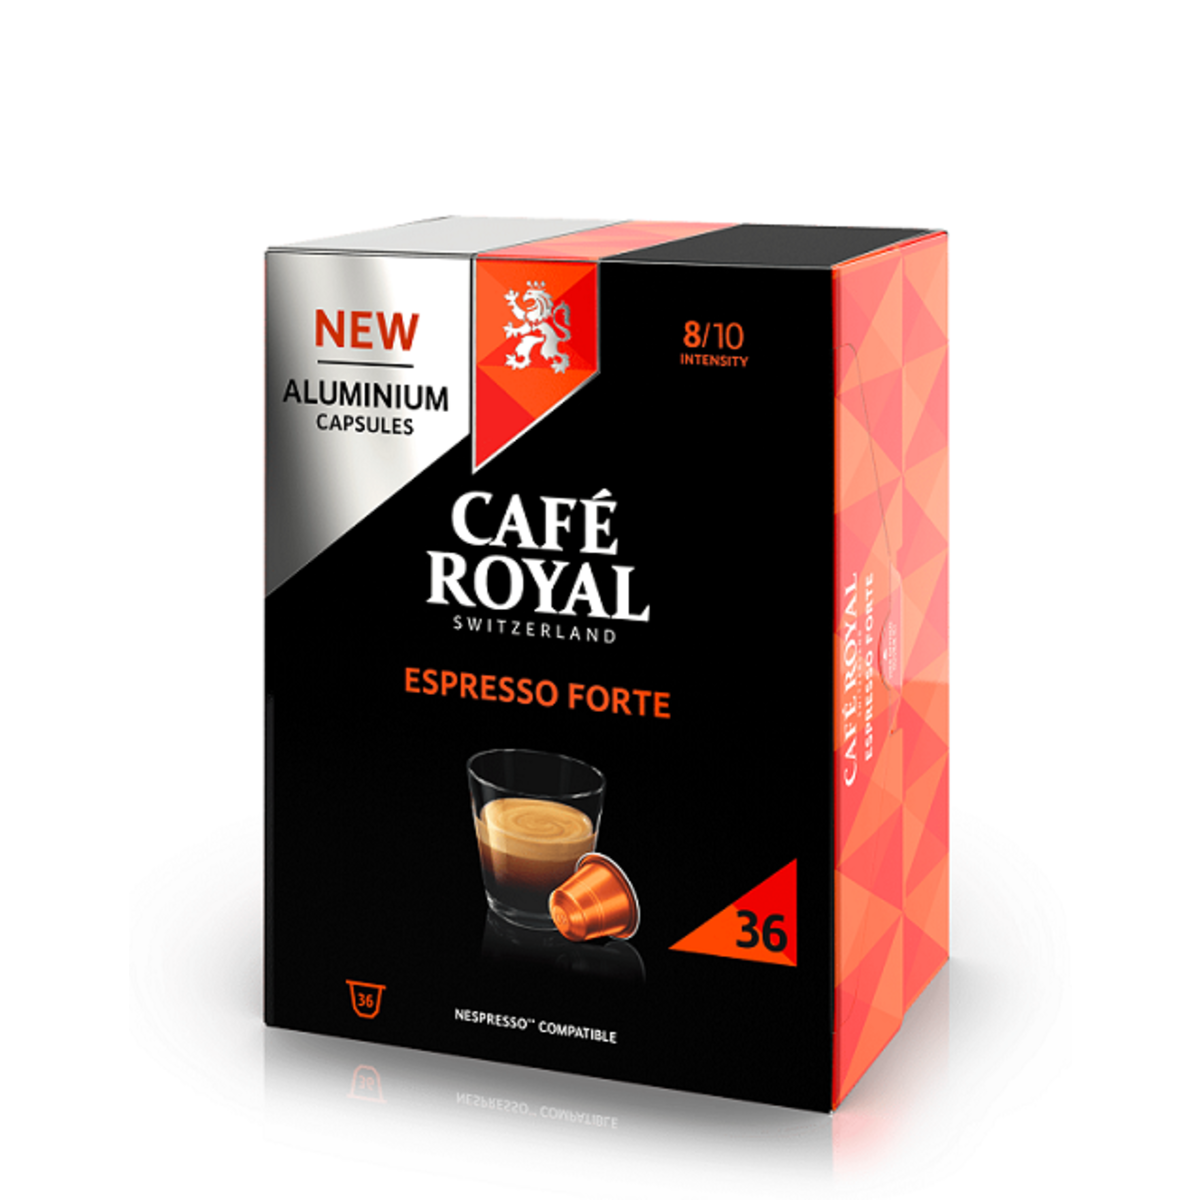 Cafe Royal Espresso Forte 36бр капсули за Nespresso кафемашина